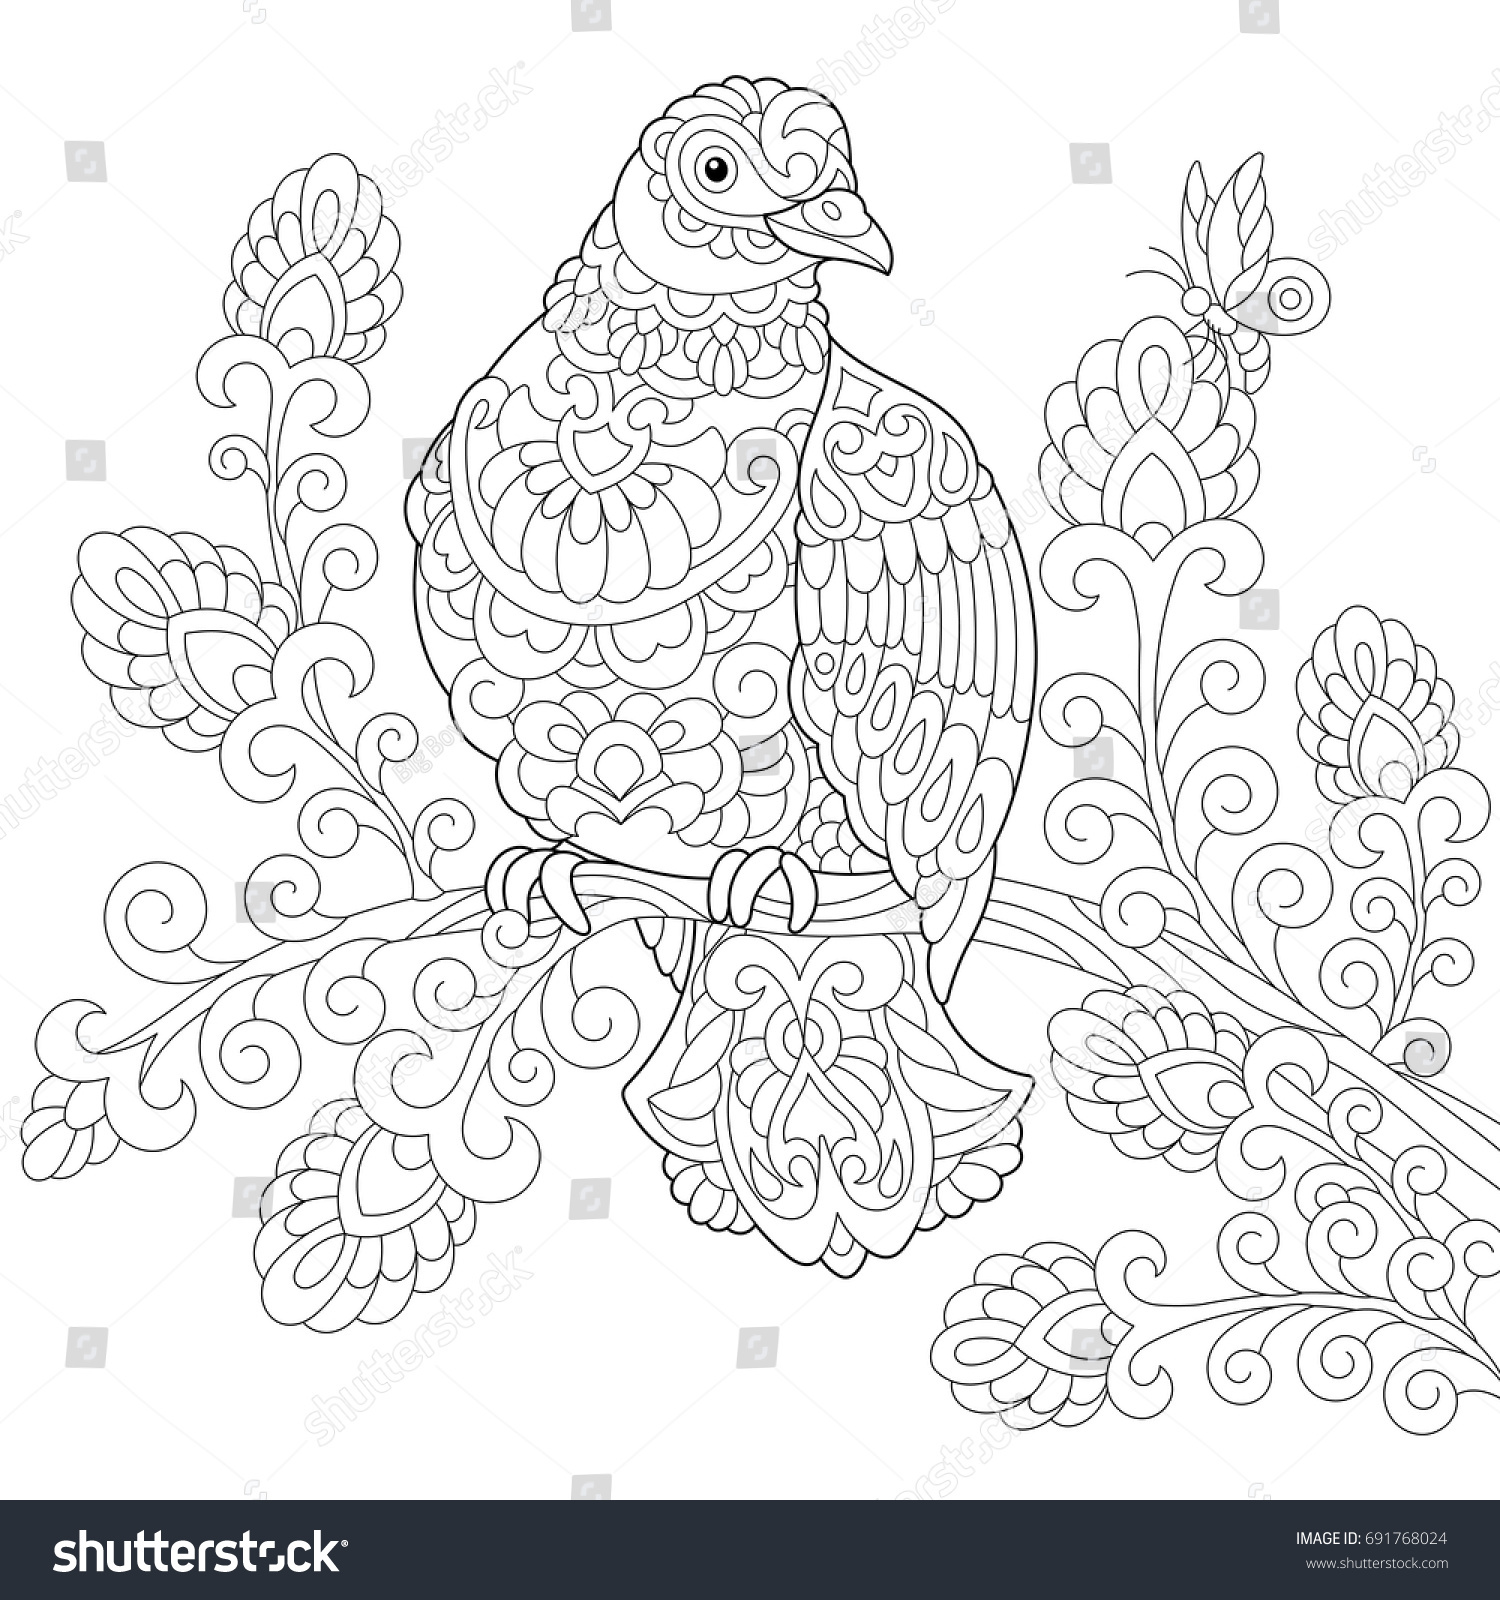 Coloring Page Of Dove Pigeon Bird Freehand Sketch Drawing For Adult Antistress Colouring